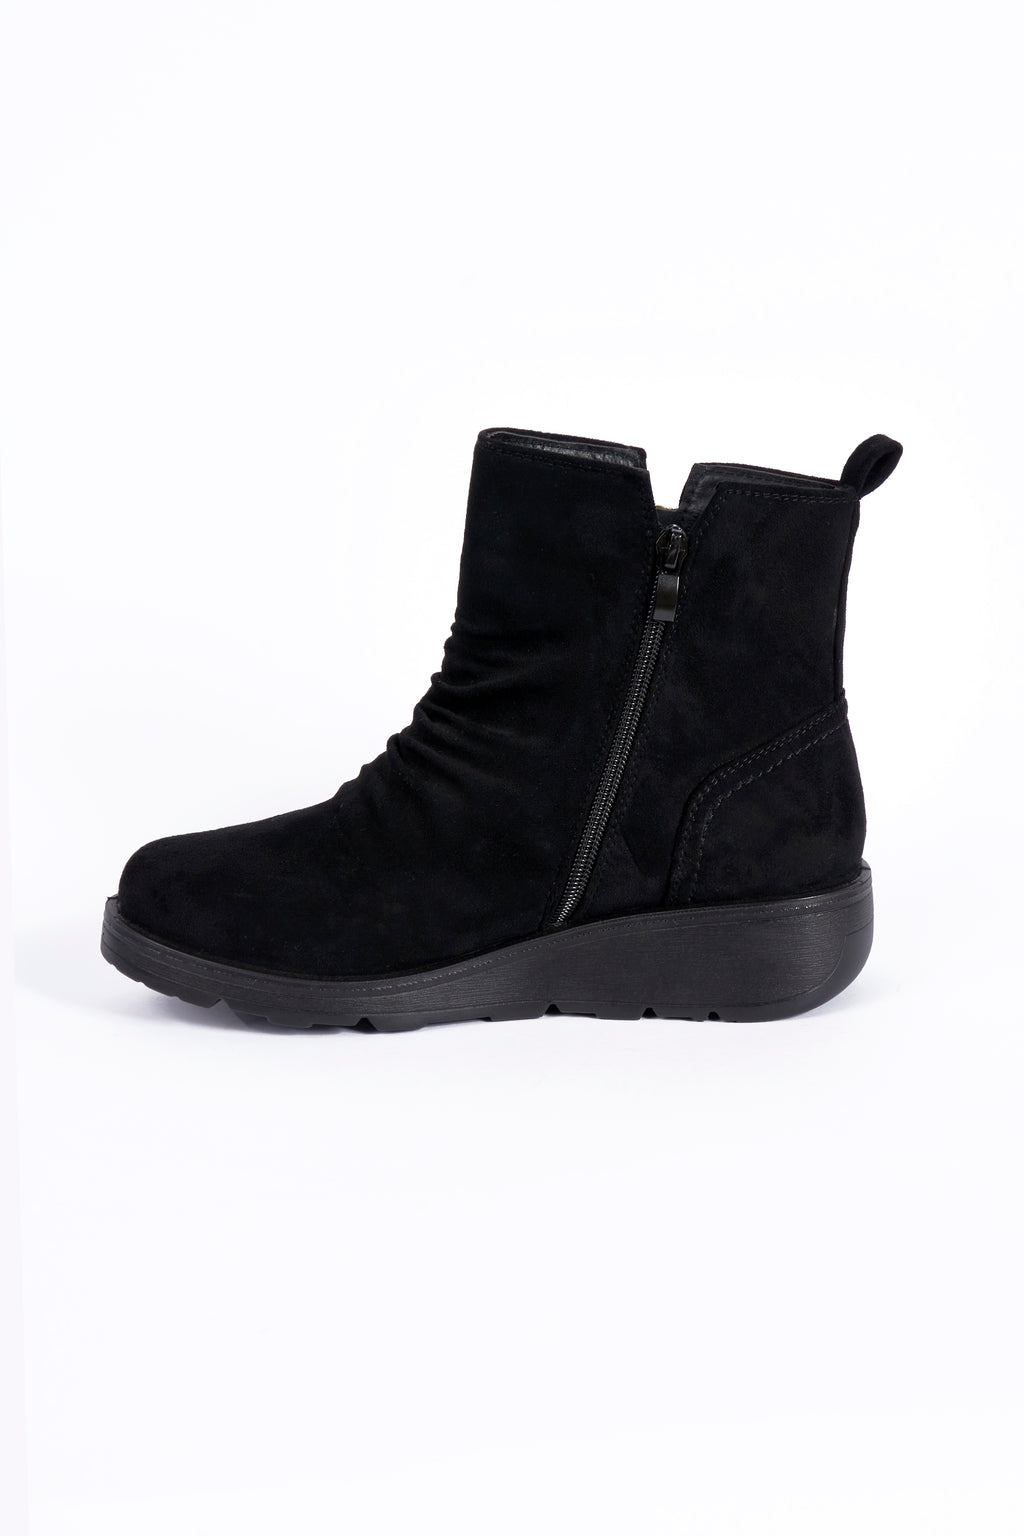 Julia Black Wedge Wide Fit PU Ankle Boot   Sizes : 4-8